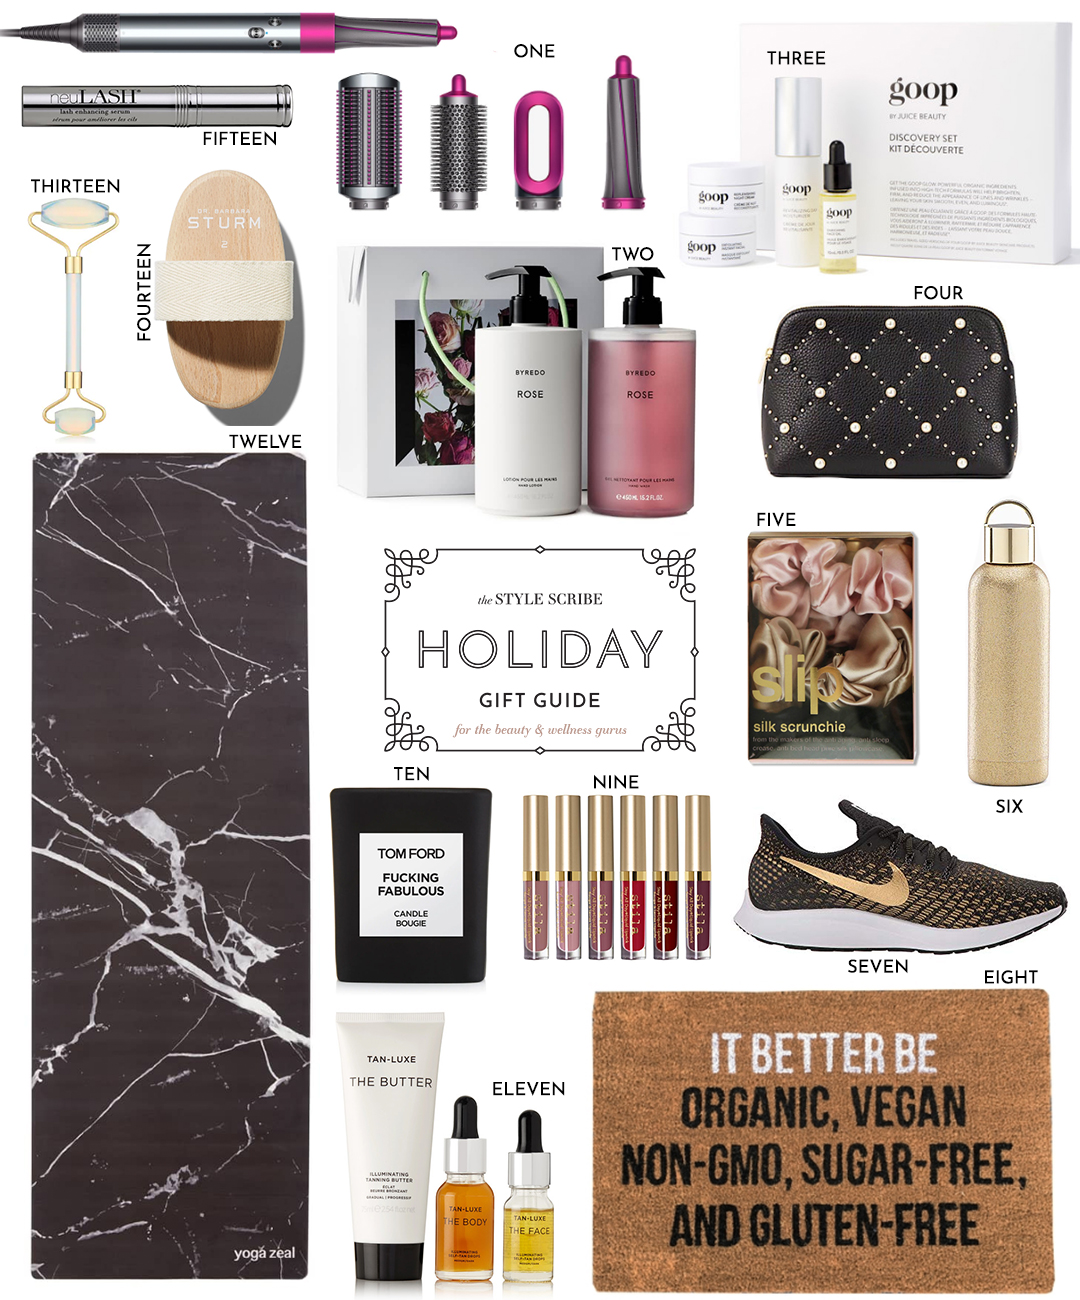 HOLIDAY GIFT GUIDE // FOR THE BEAUTY & WELLNESS GURUS